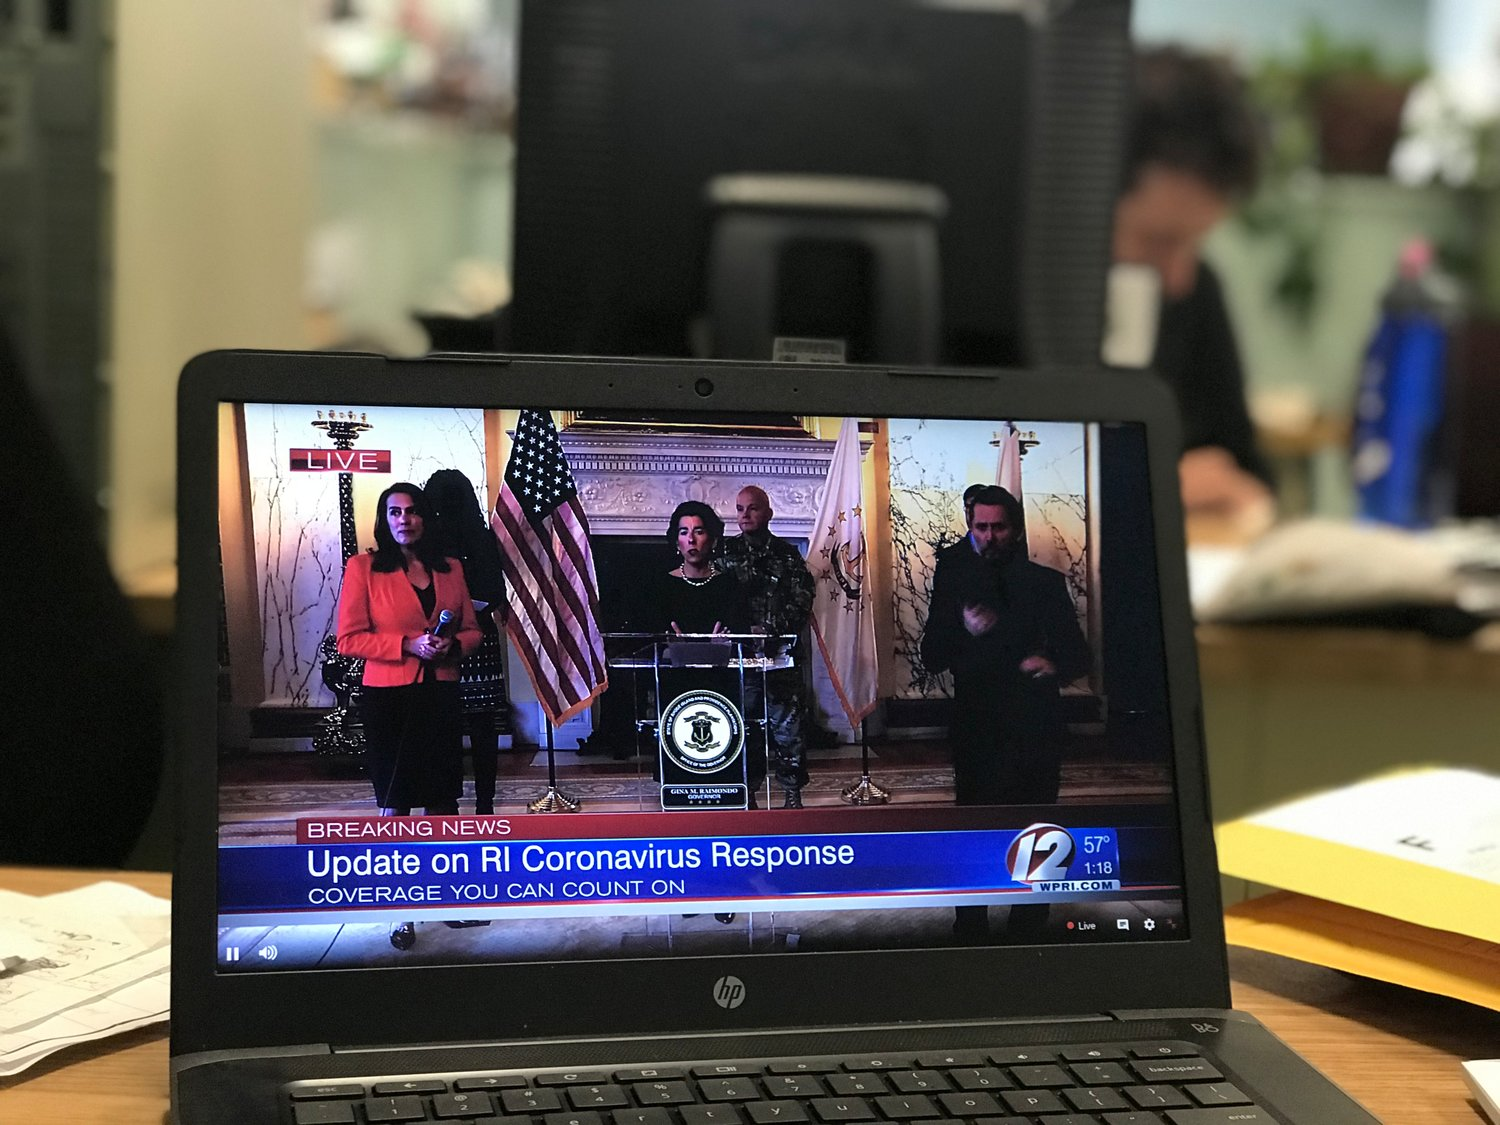 Gov. Gina Raimondo's Friday COVID-19 briefing was the first conducted from the State House and with the remote participation of the state's press corps.